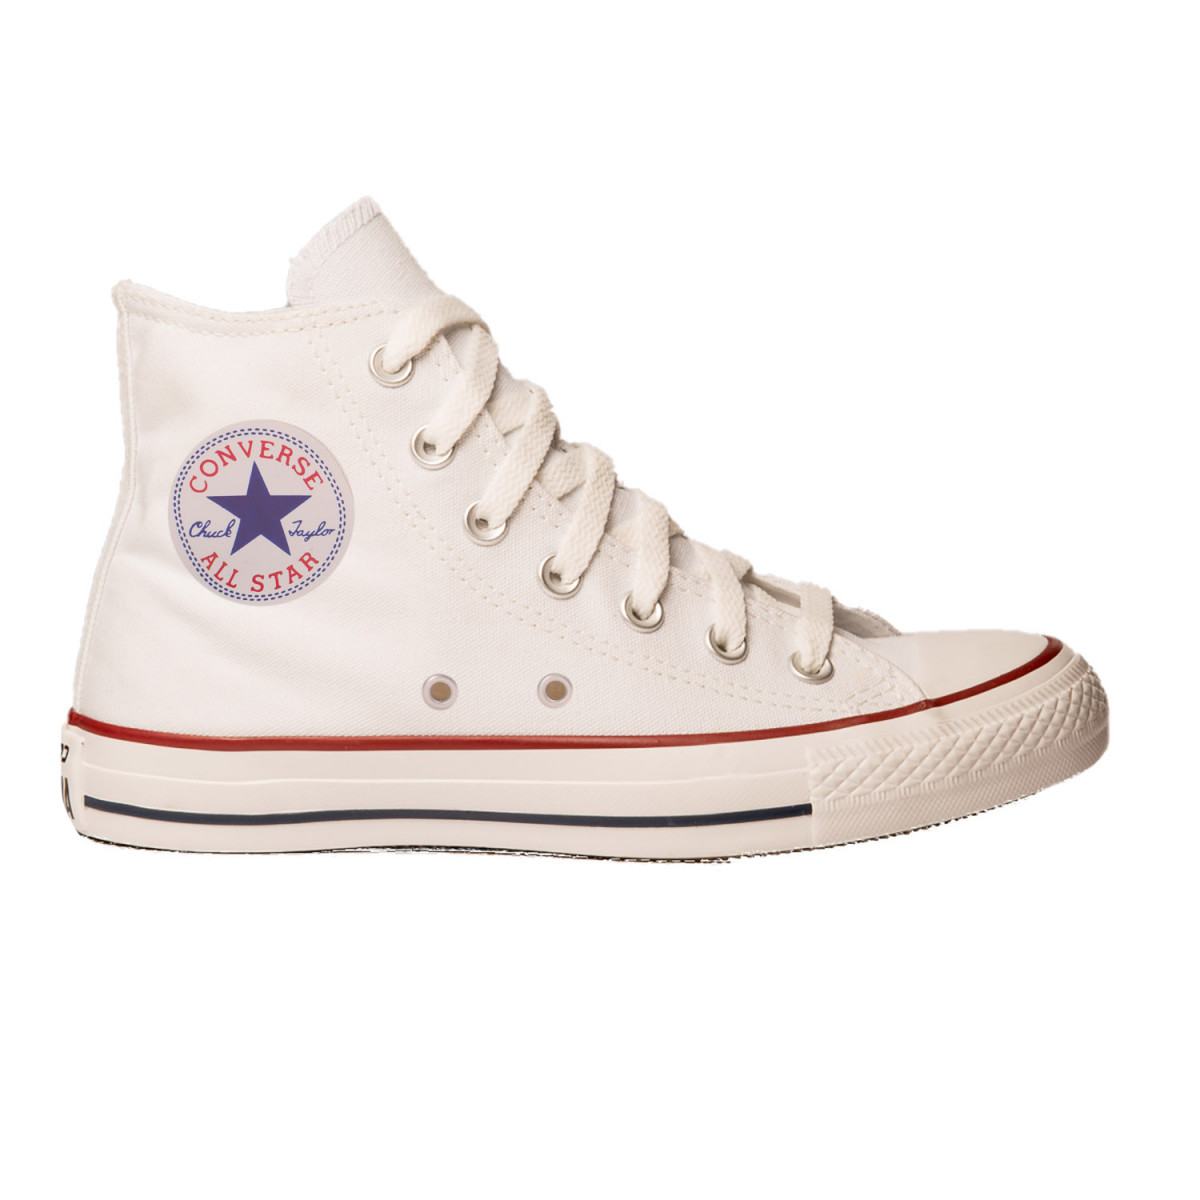 Zapatillas Converse All Star Hi Optical